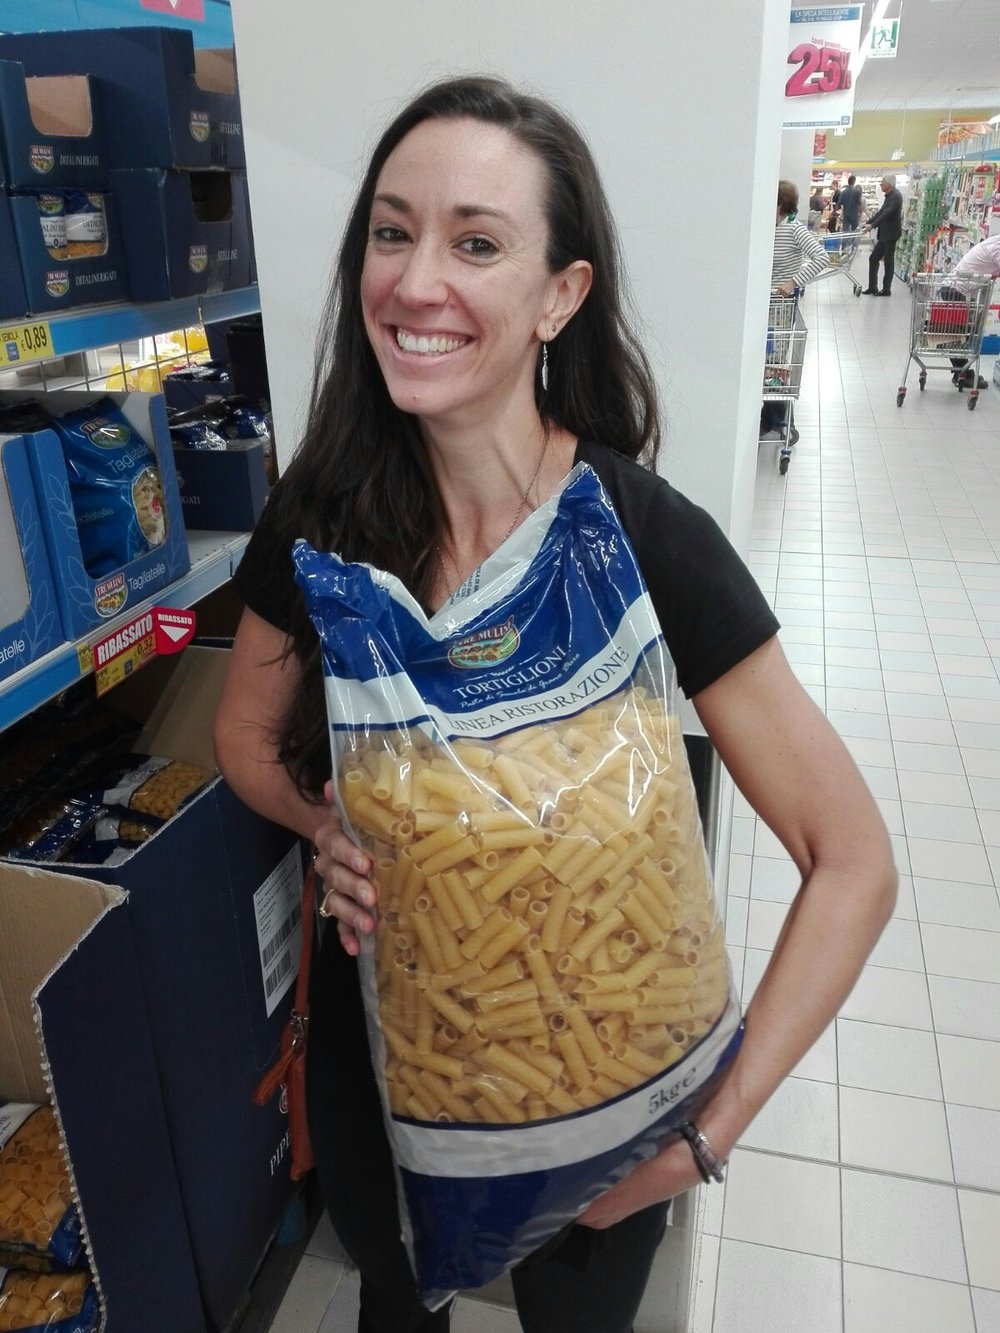 Have not purchased this 5kg bag of pasta...yet